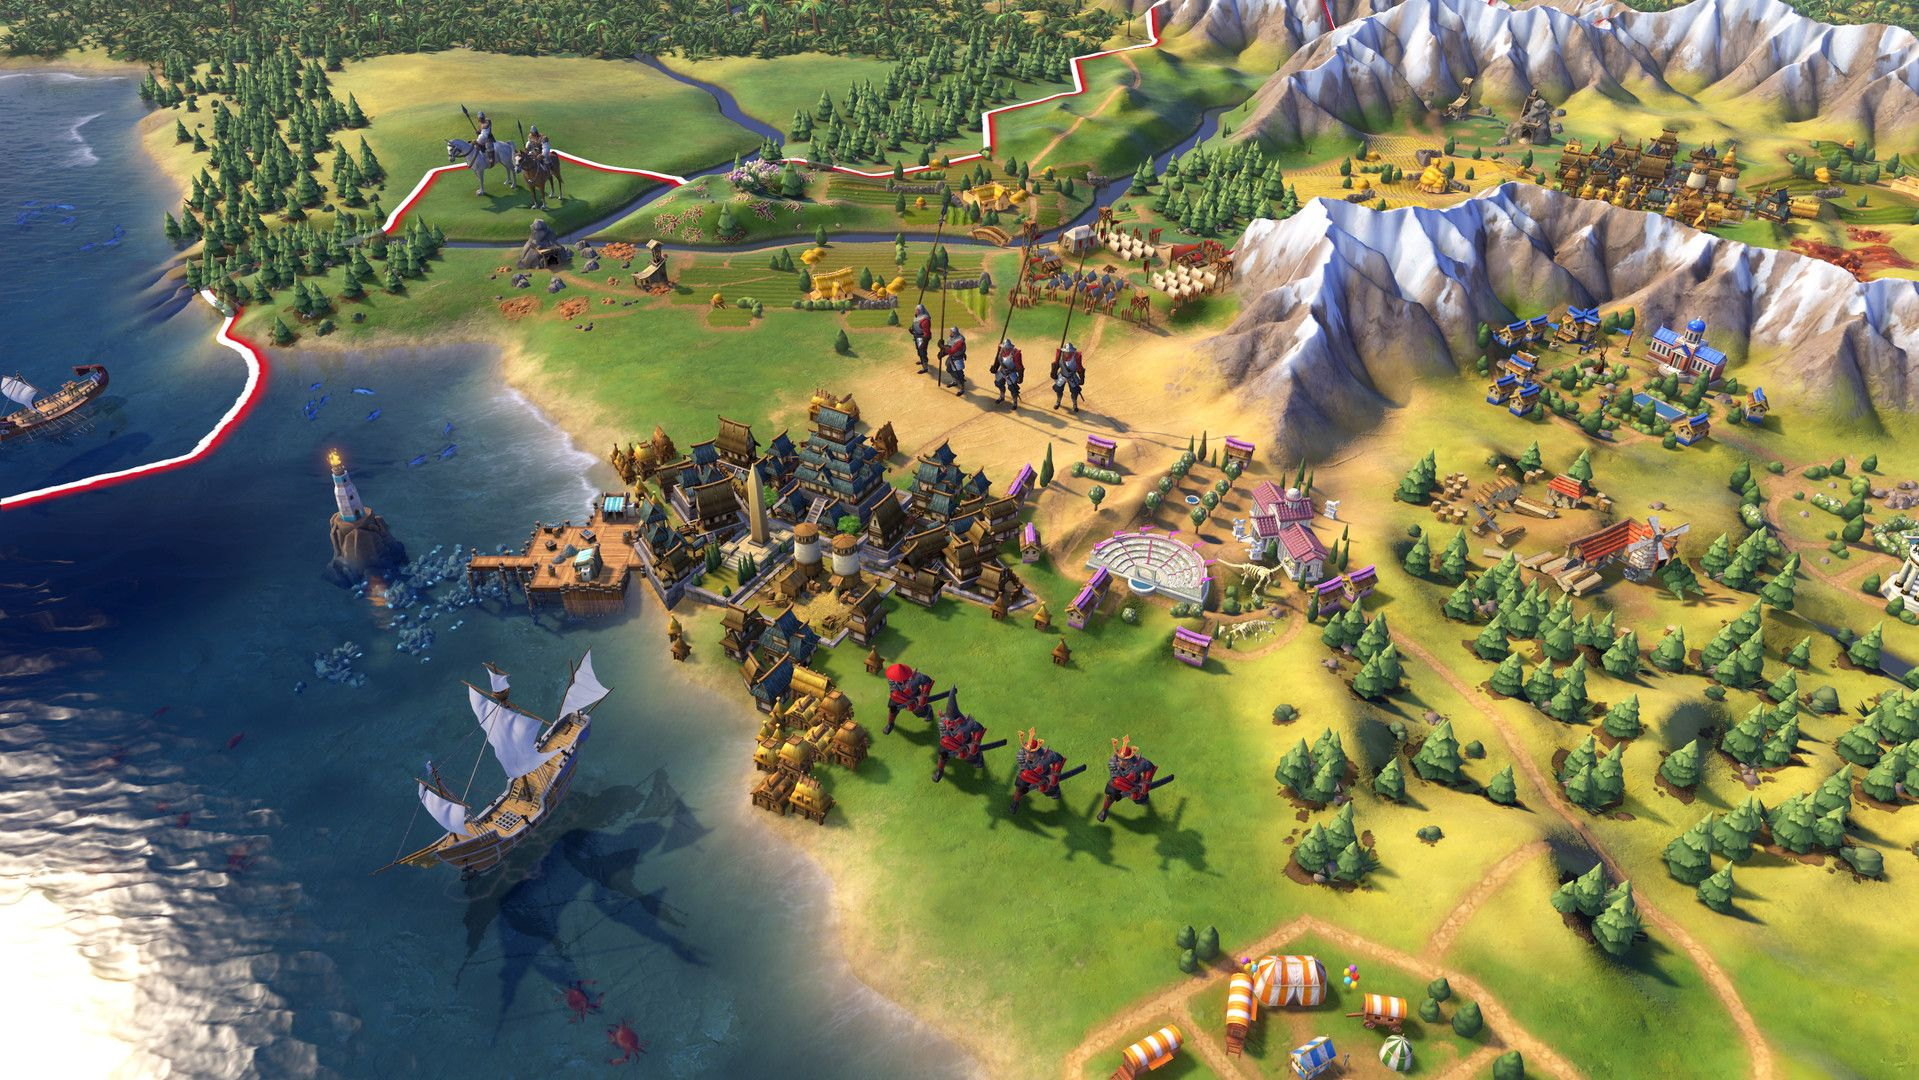 Civilization 6 - News, Release Date, Trailers and more